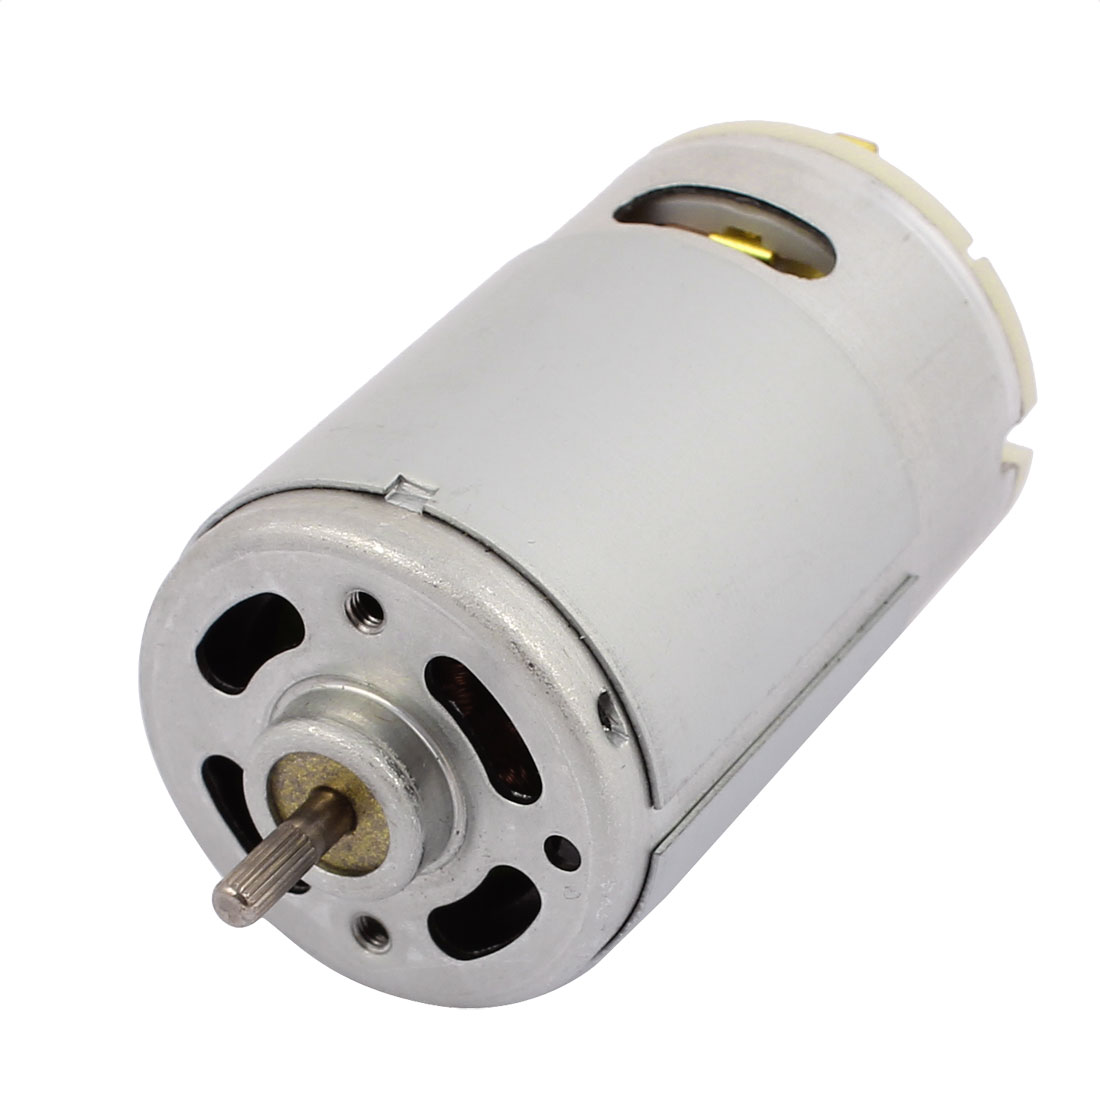 DC 12V 10000RPM Cylindrical Magnetic Electric DC Motor 36mm x 54mm